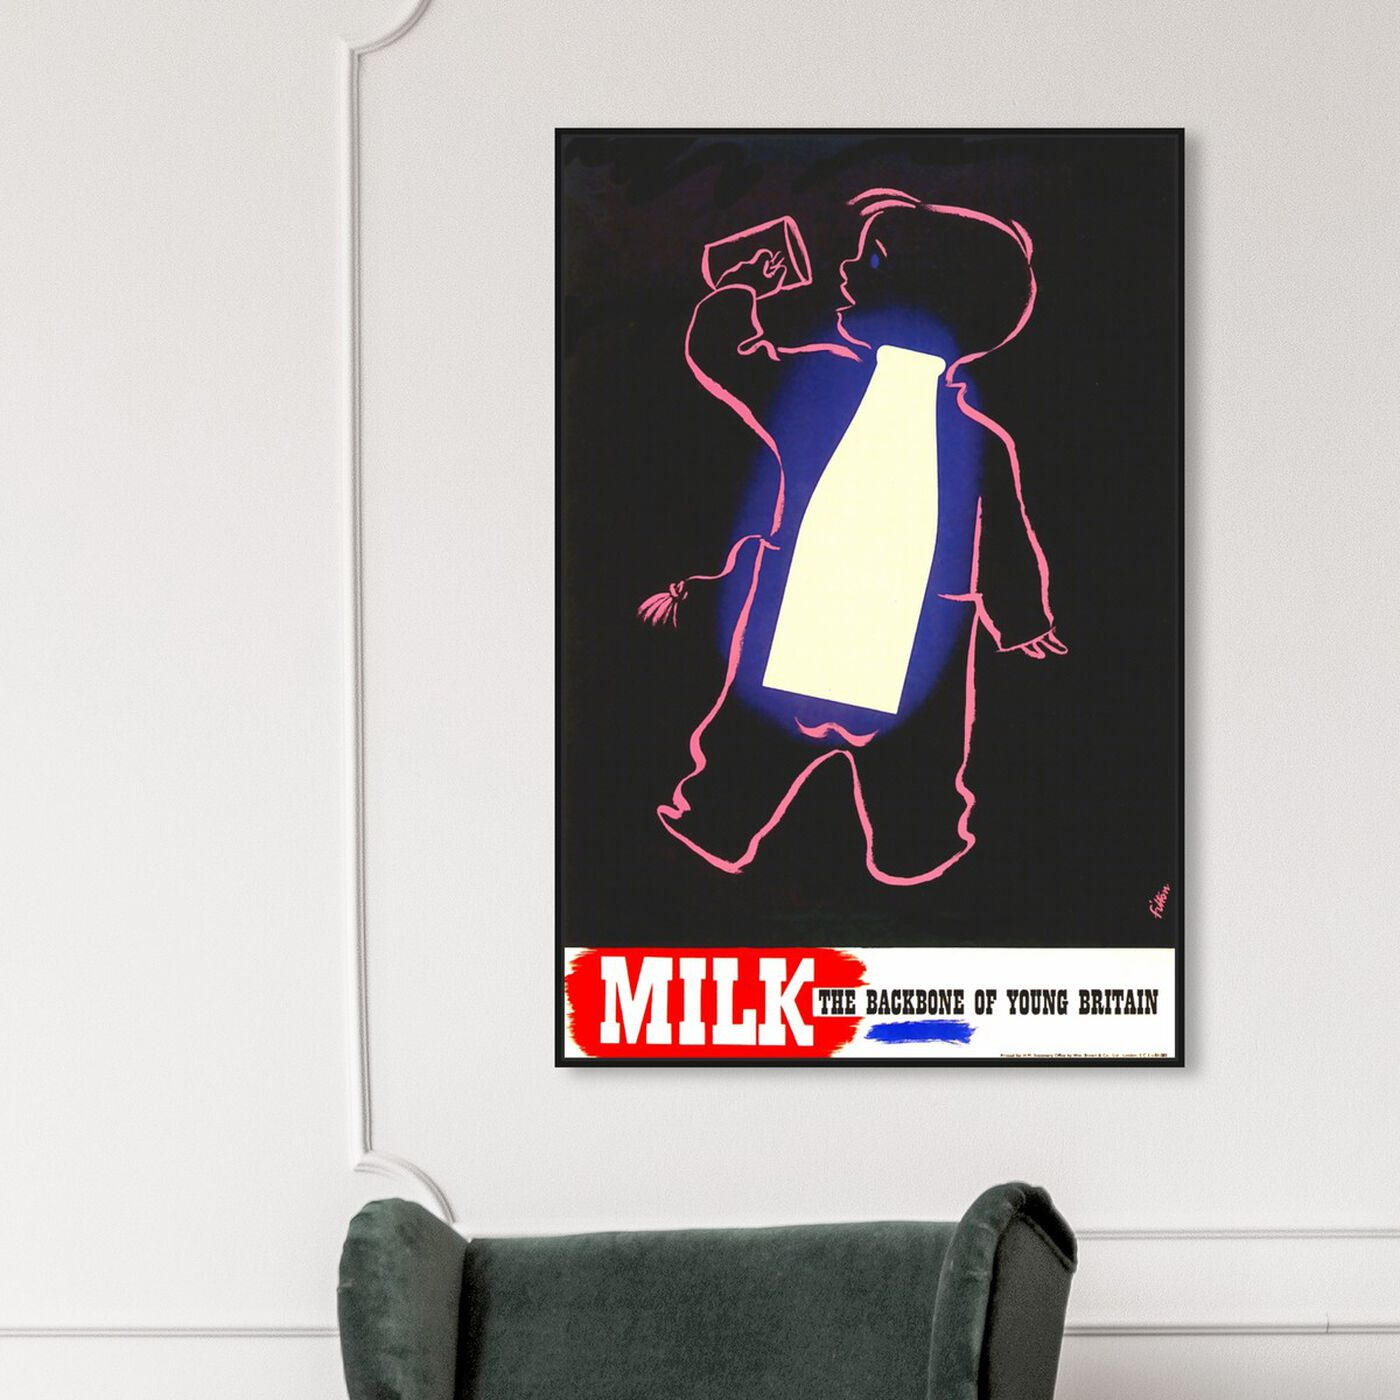 Hanging view of Milk featuring advertising and posters art.